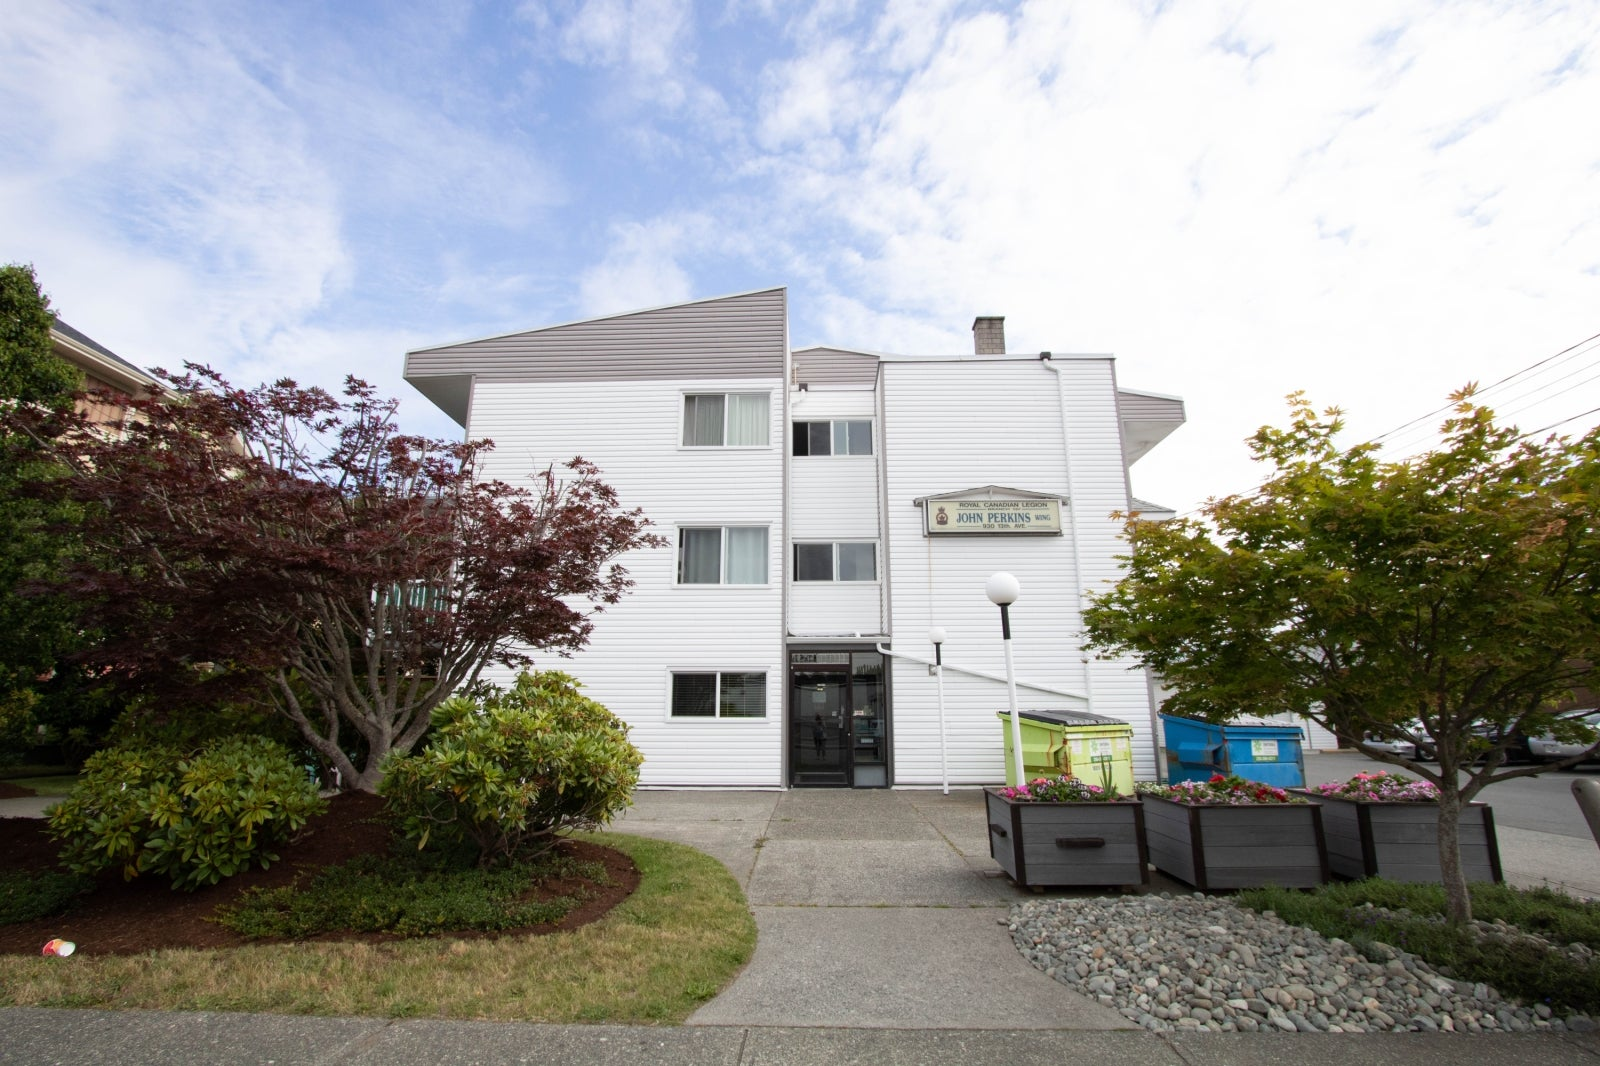 John Perkins Memorial Housing 930 13 Avenue - Waitlist - CR Campbell River Central Condo Apartment for sale(380594) #1